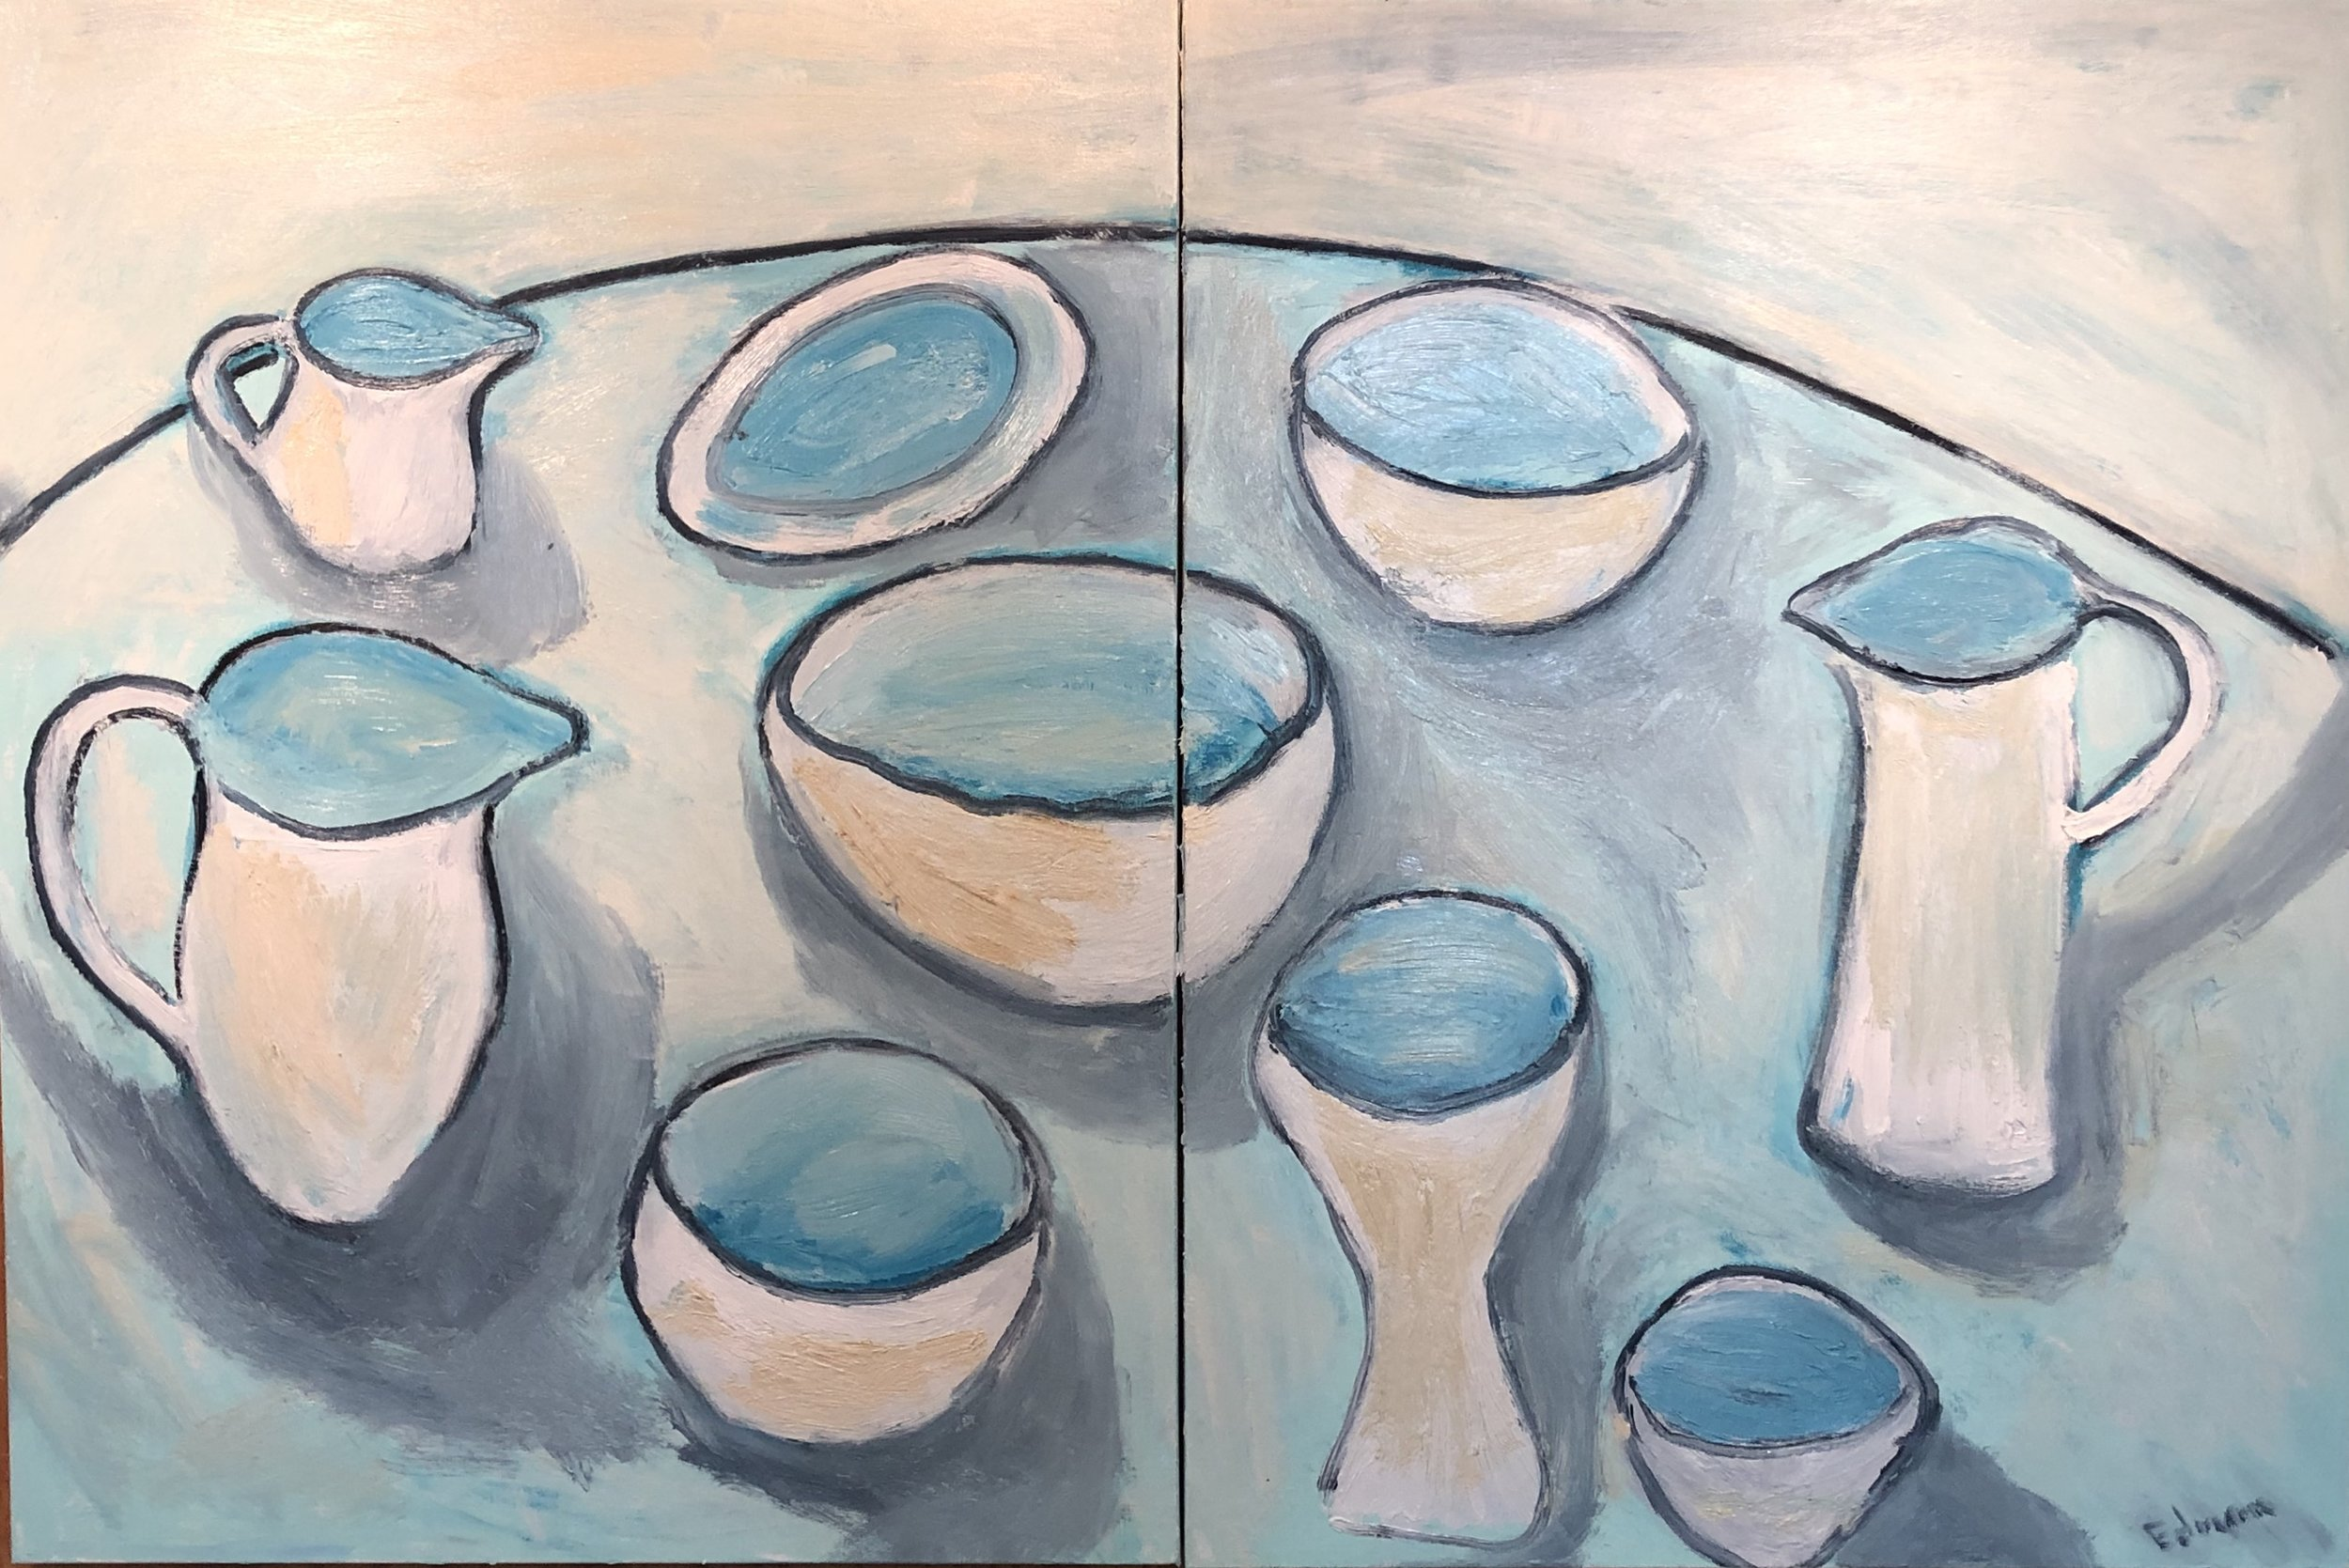 Table of Bowls, 2019